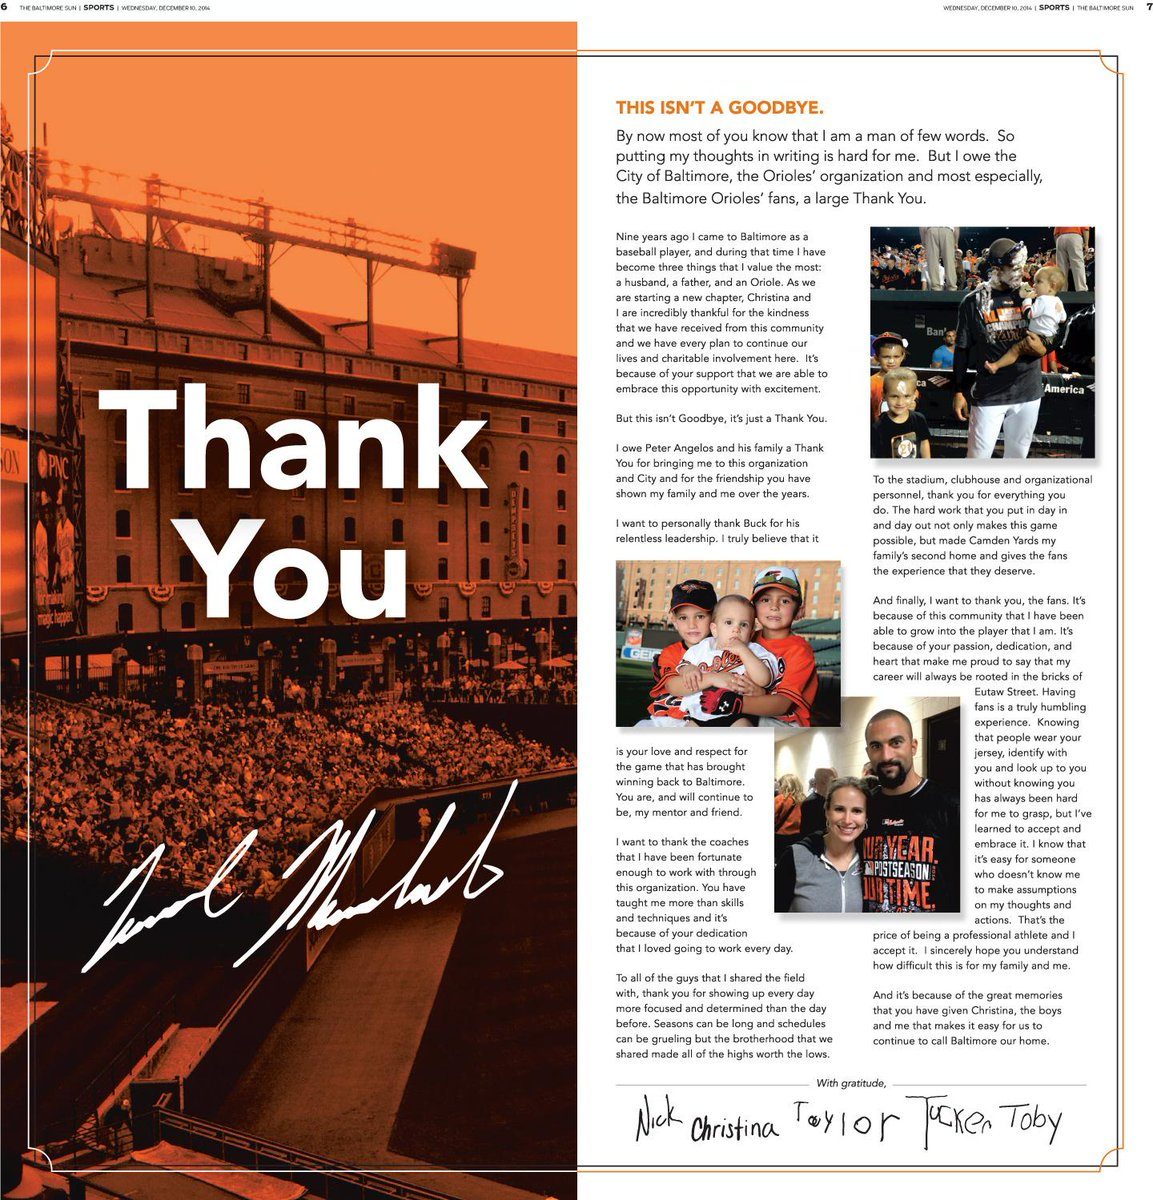 Nick Markakis took out a 2-page ad in today's Sun thanking #Orioles fans. http://t.co/5y94azryAS http://t.co/kAnnlVsfoj